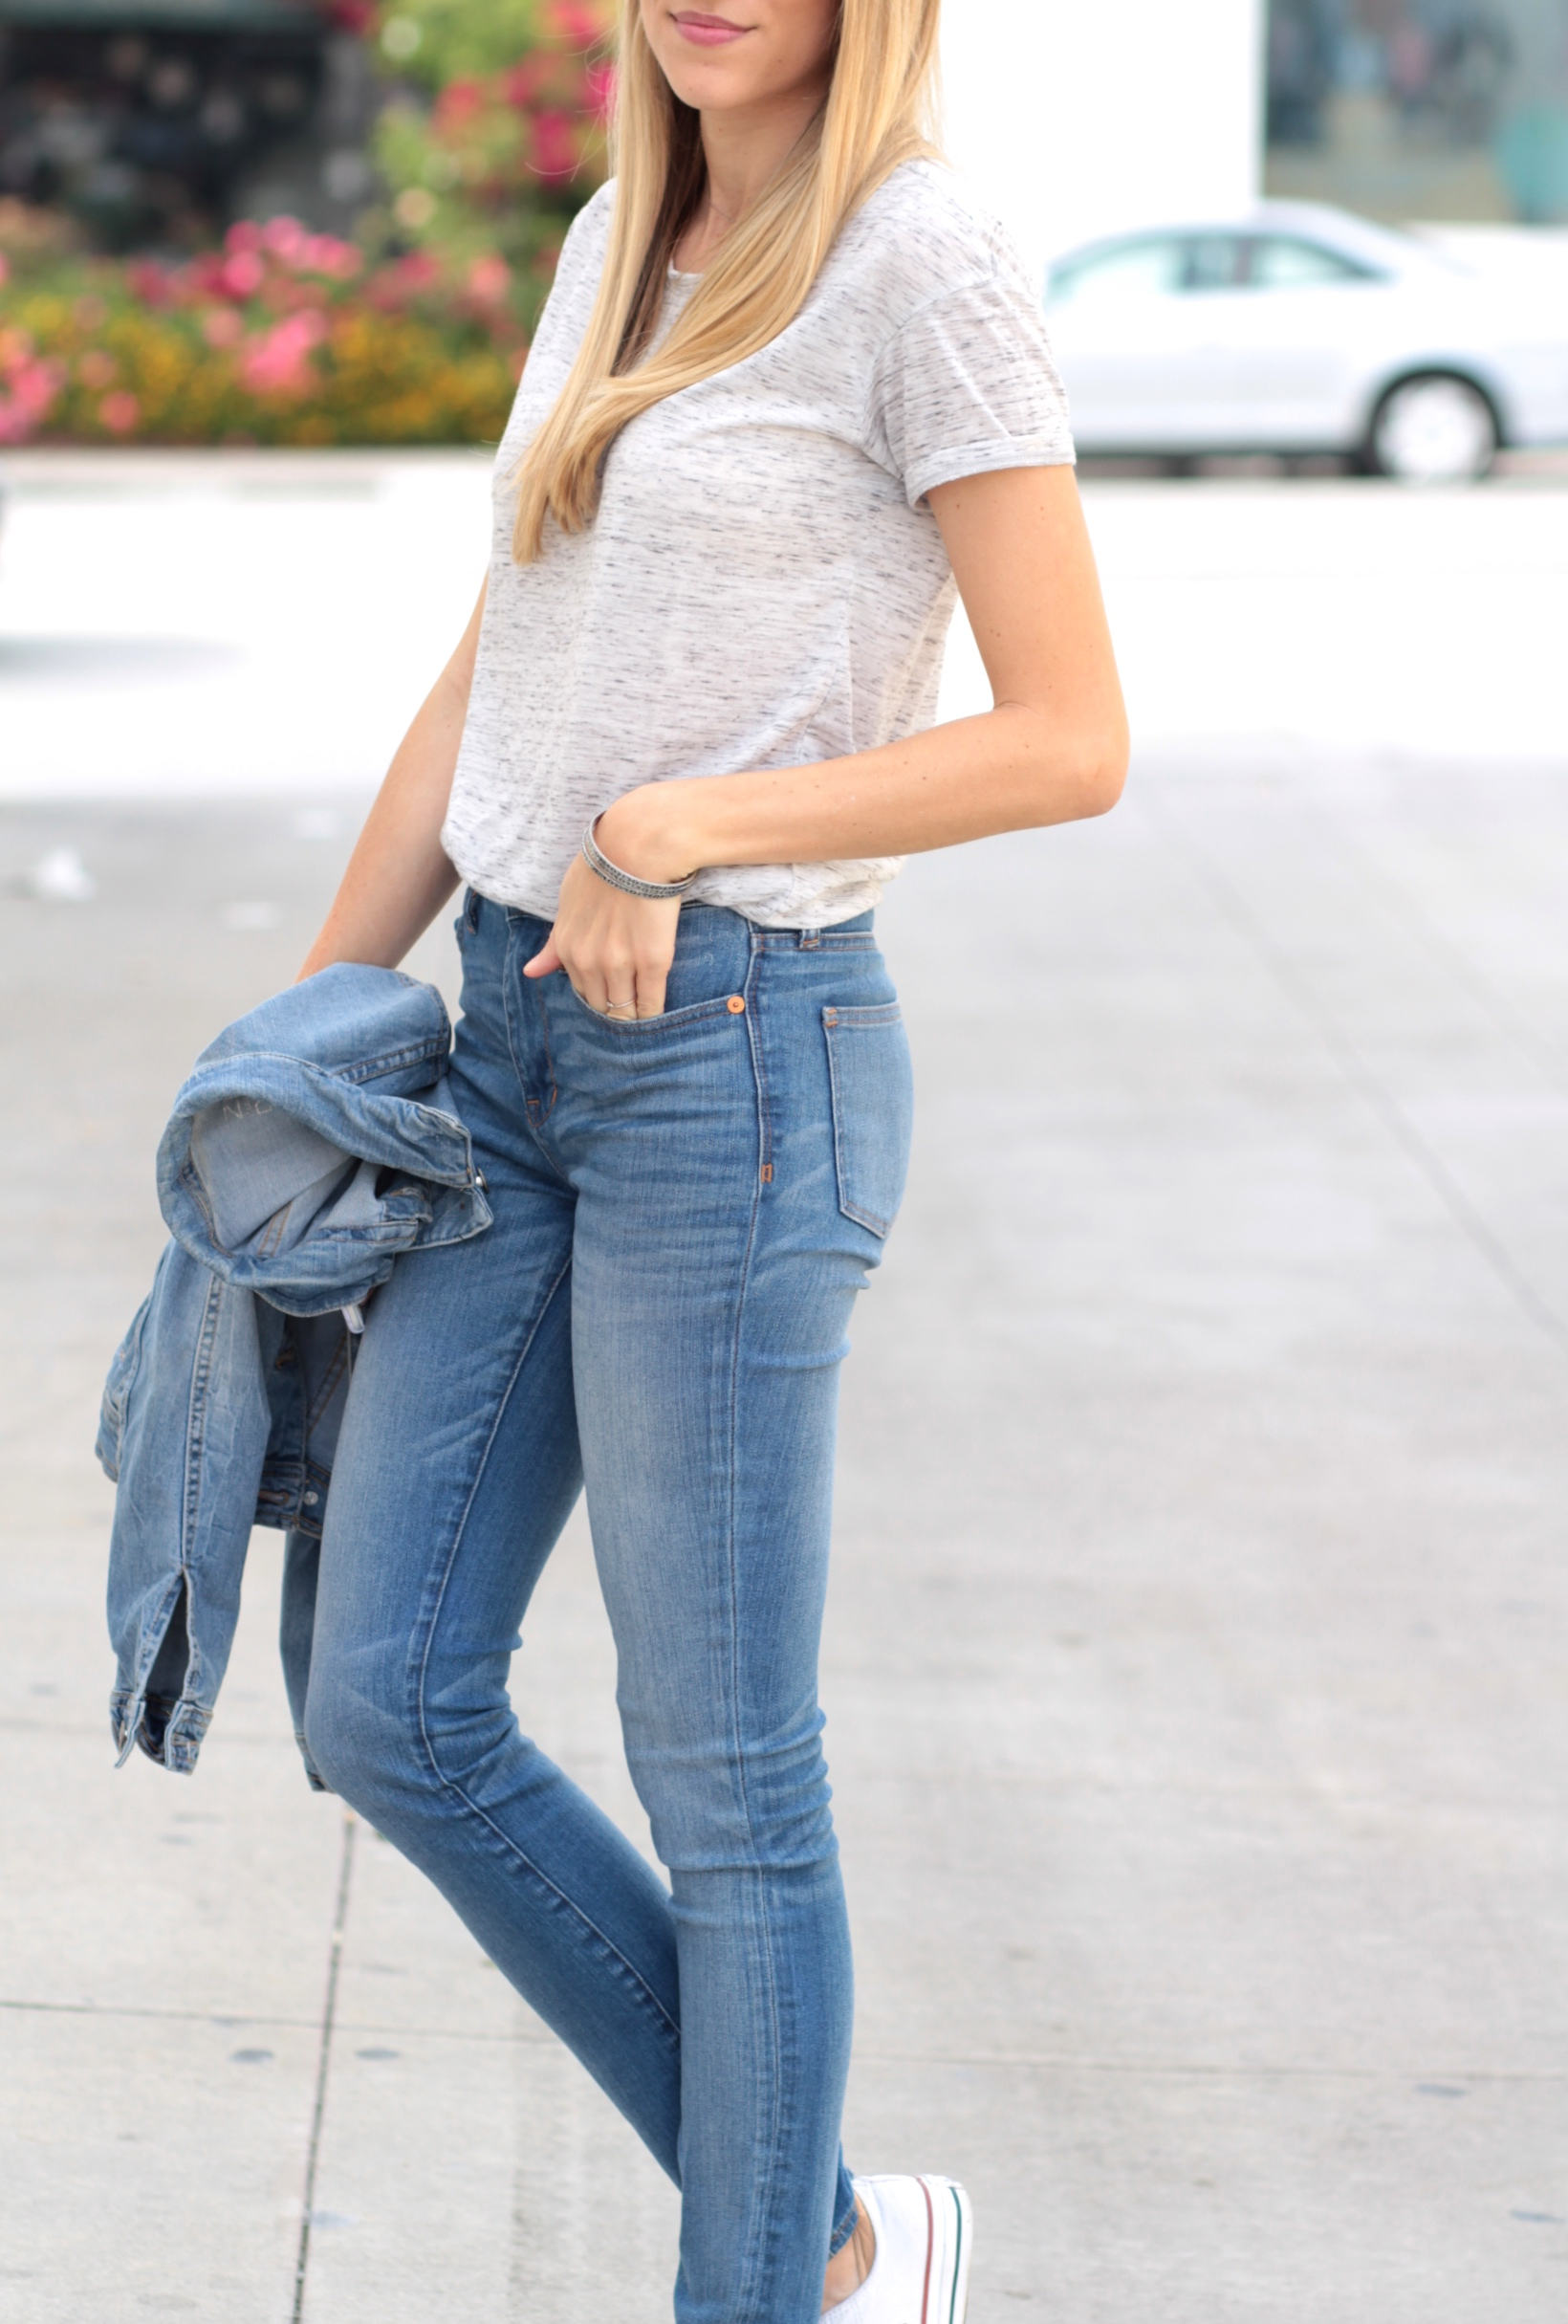 Bella Luxx tee + high waisted Madewell jeans | Adorned With Love